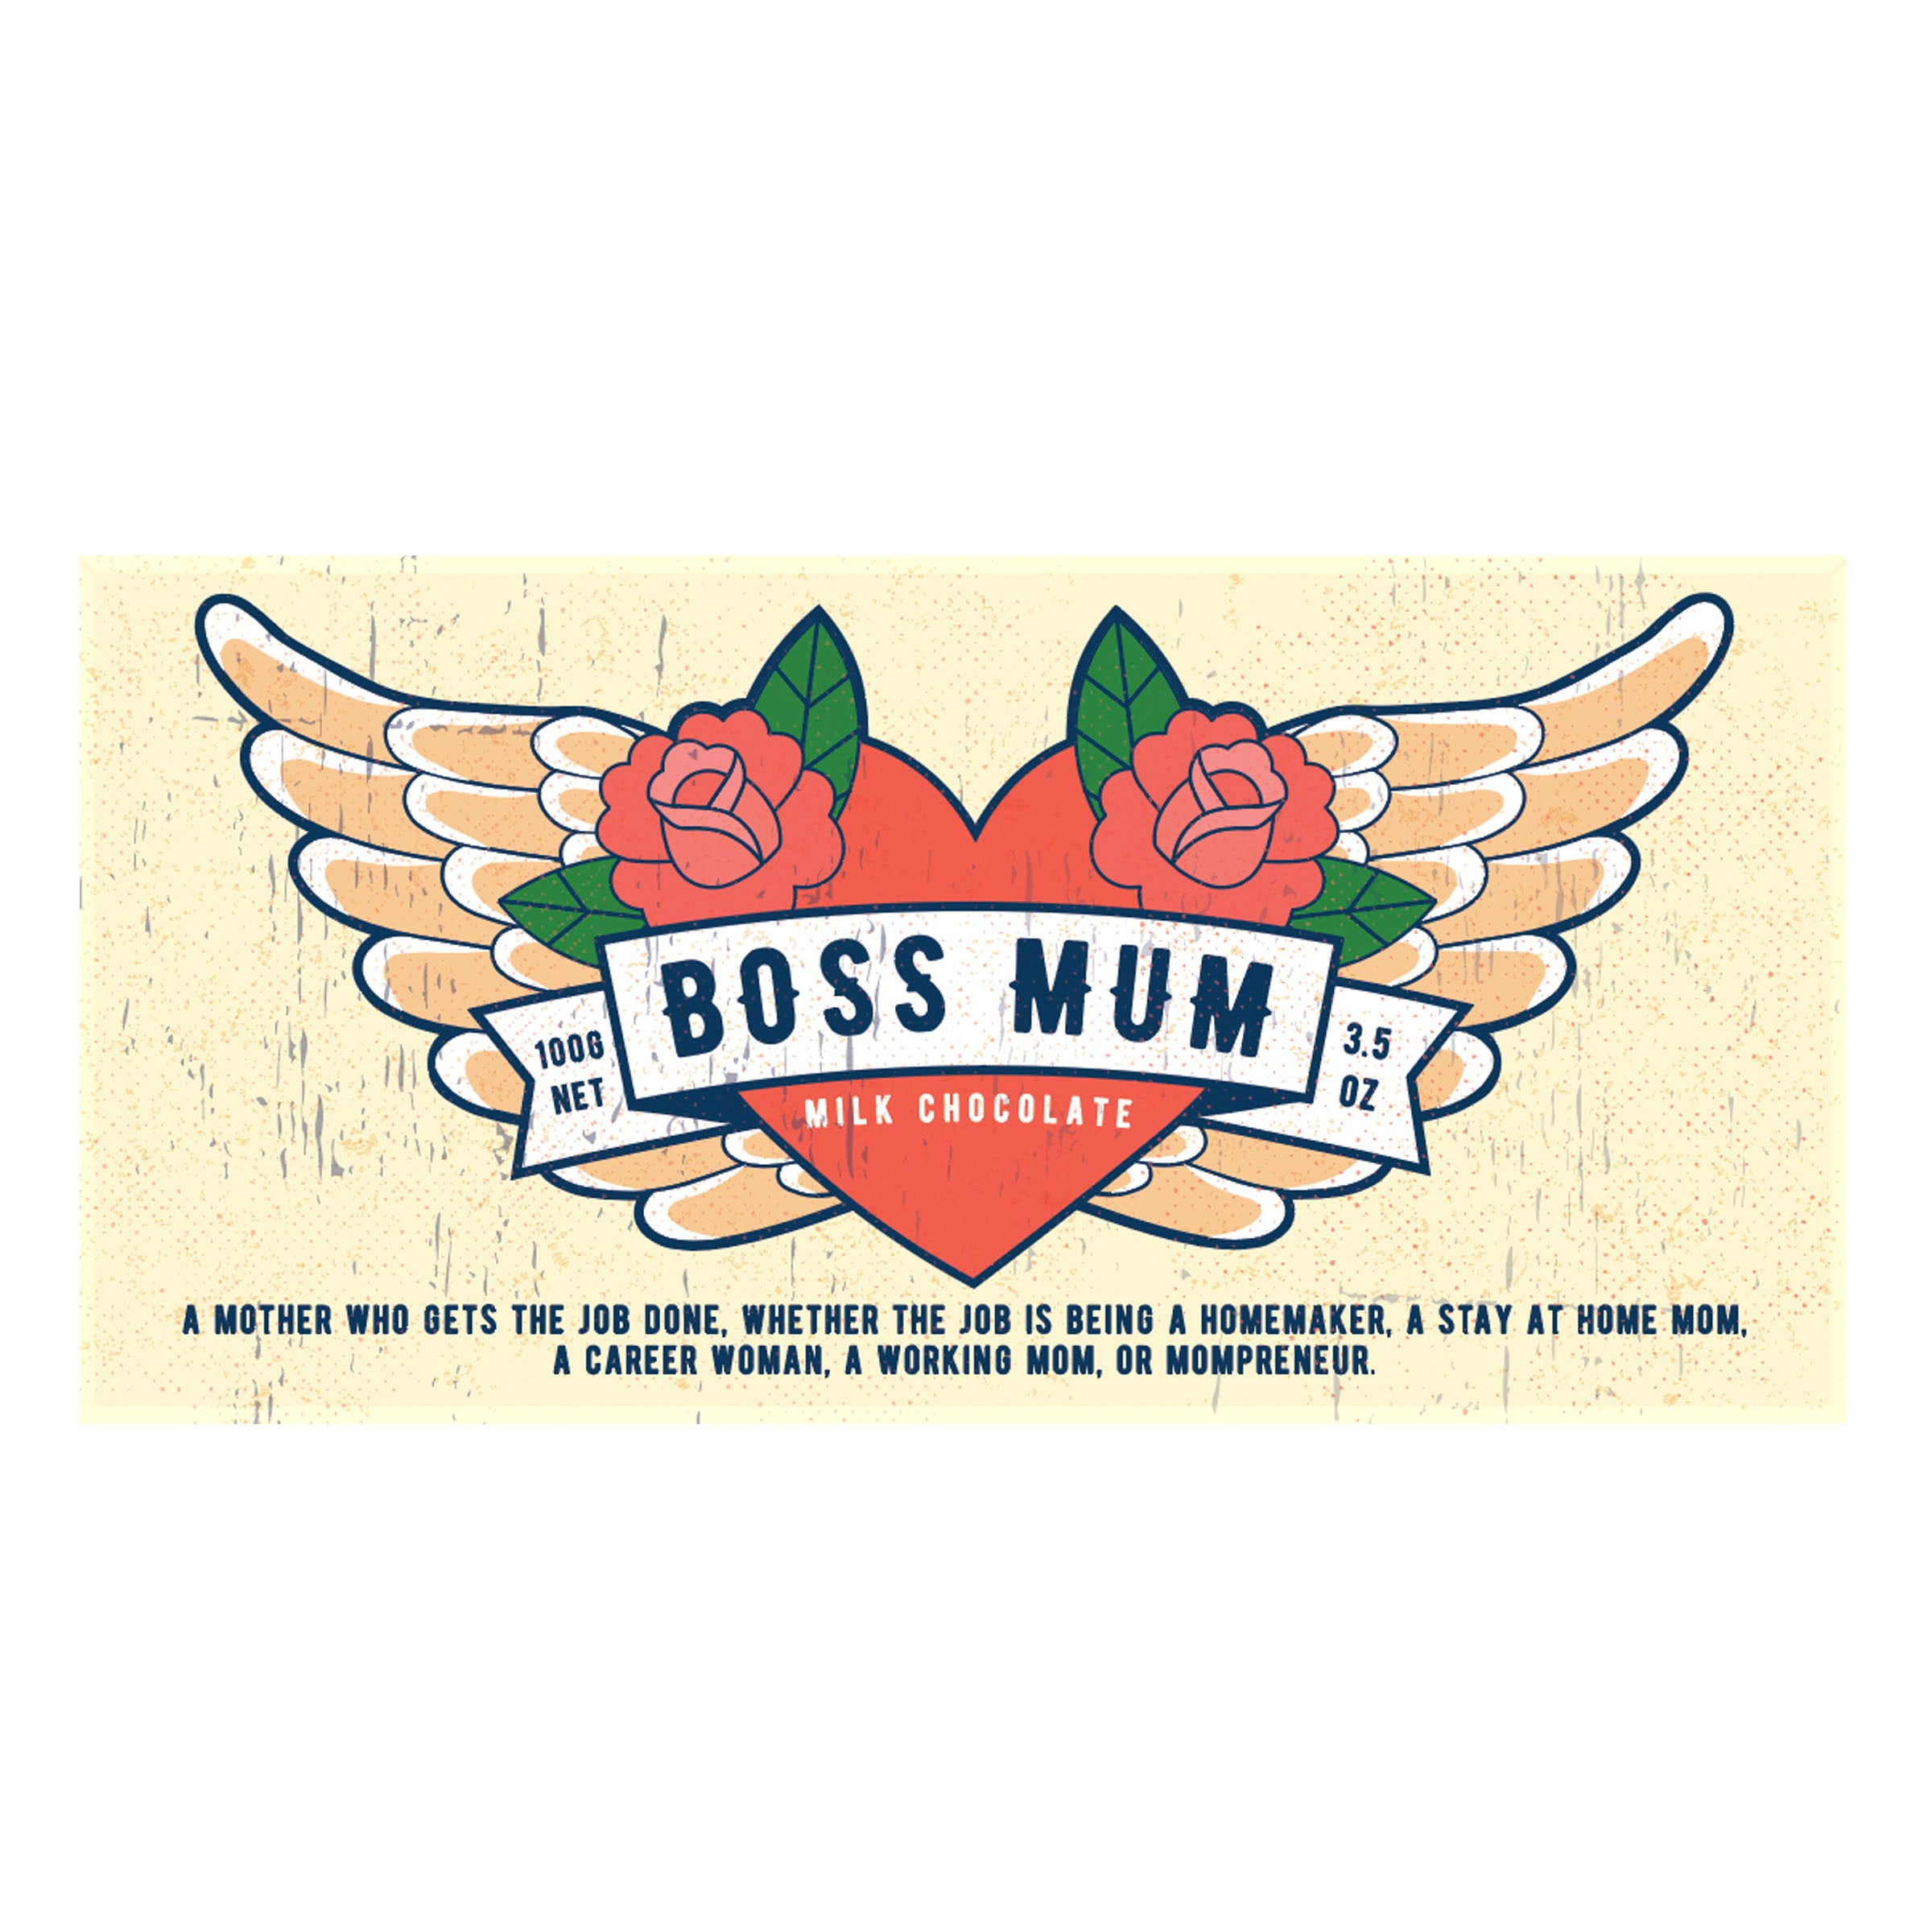 BellaBerry - Boss MUM Milk Chocolate - last minute gift idea - melbourne